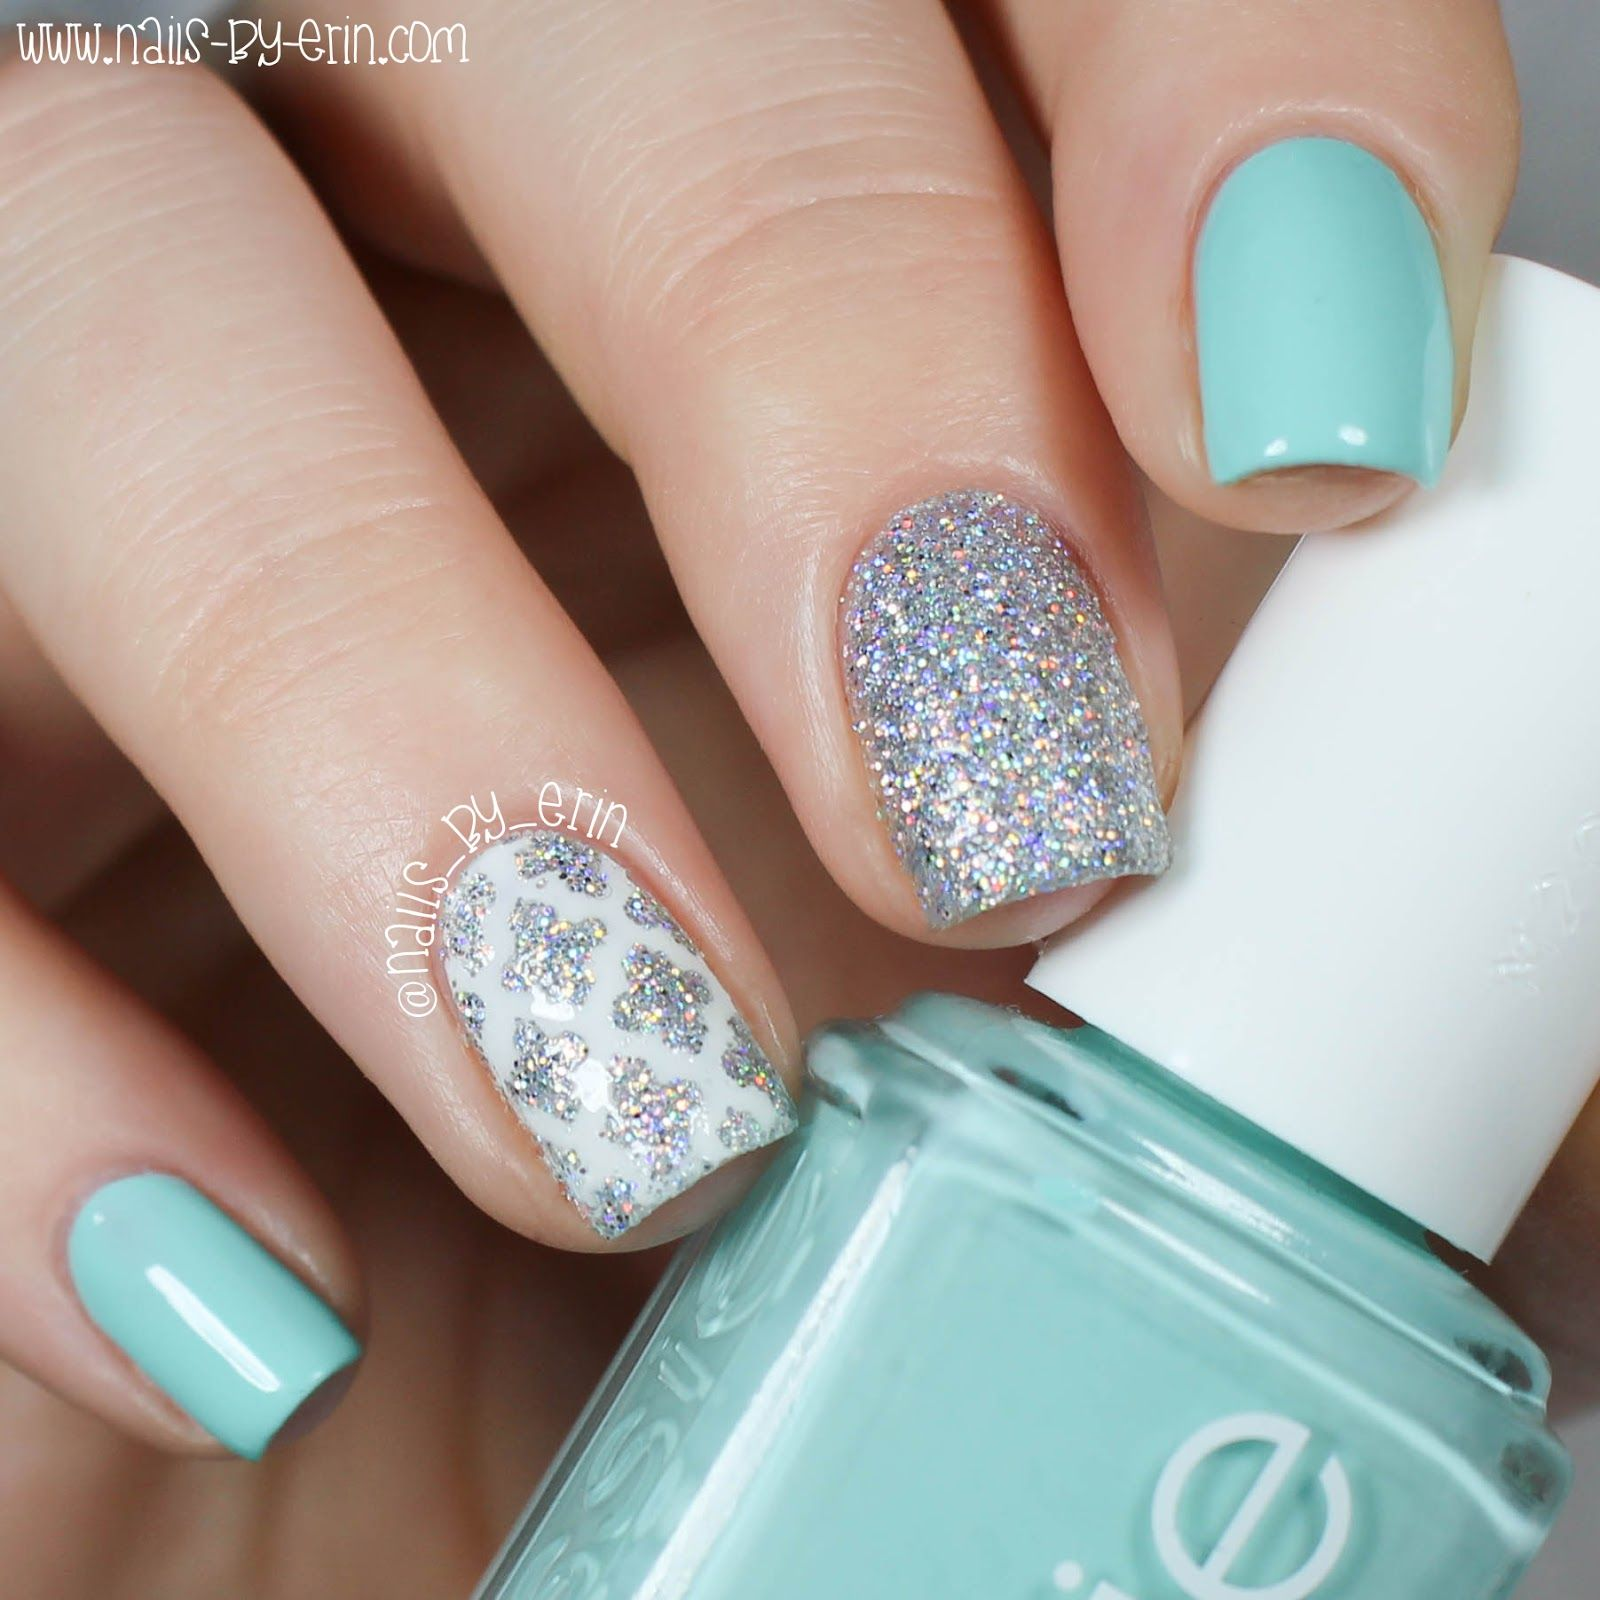 nailsbyerin: blue and silver quatrefoil nails | nail art community